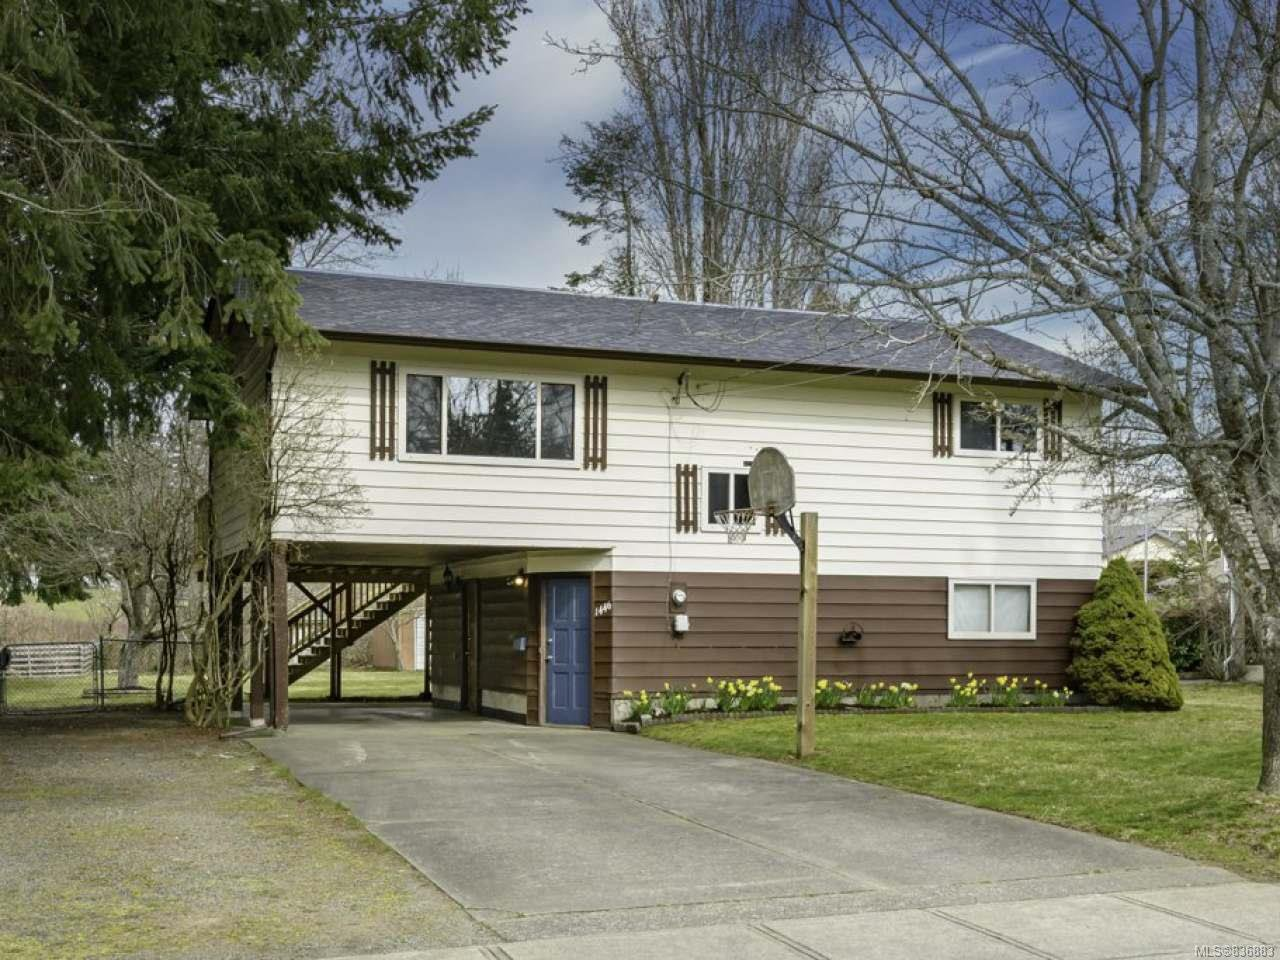 Main Photo: 1446 Dogwood Ave in COMOX: CV Comox (Town of) House for sale (Comox Valley)  : MLS®# 836883